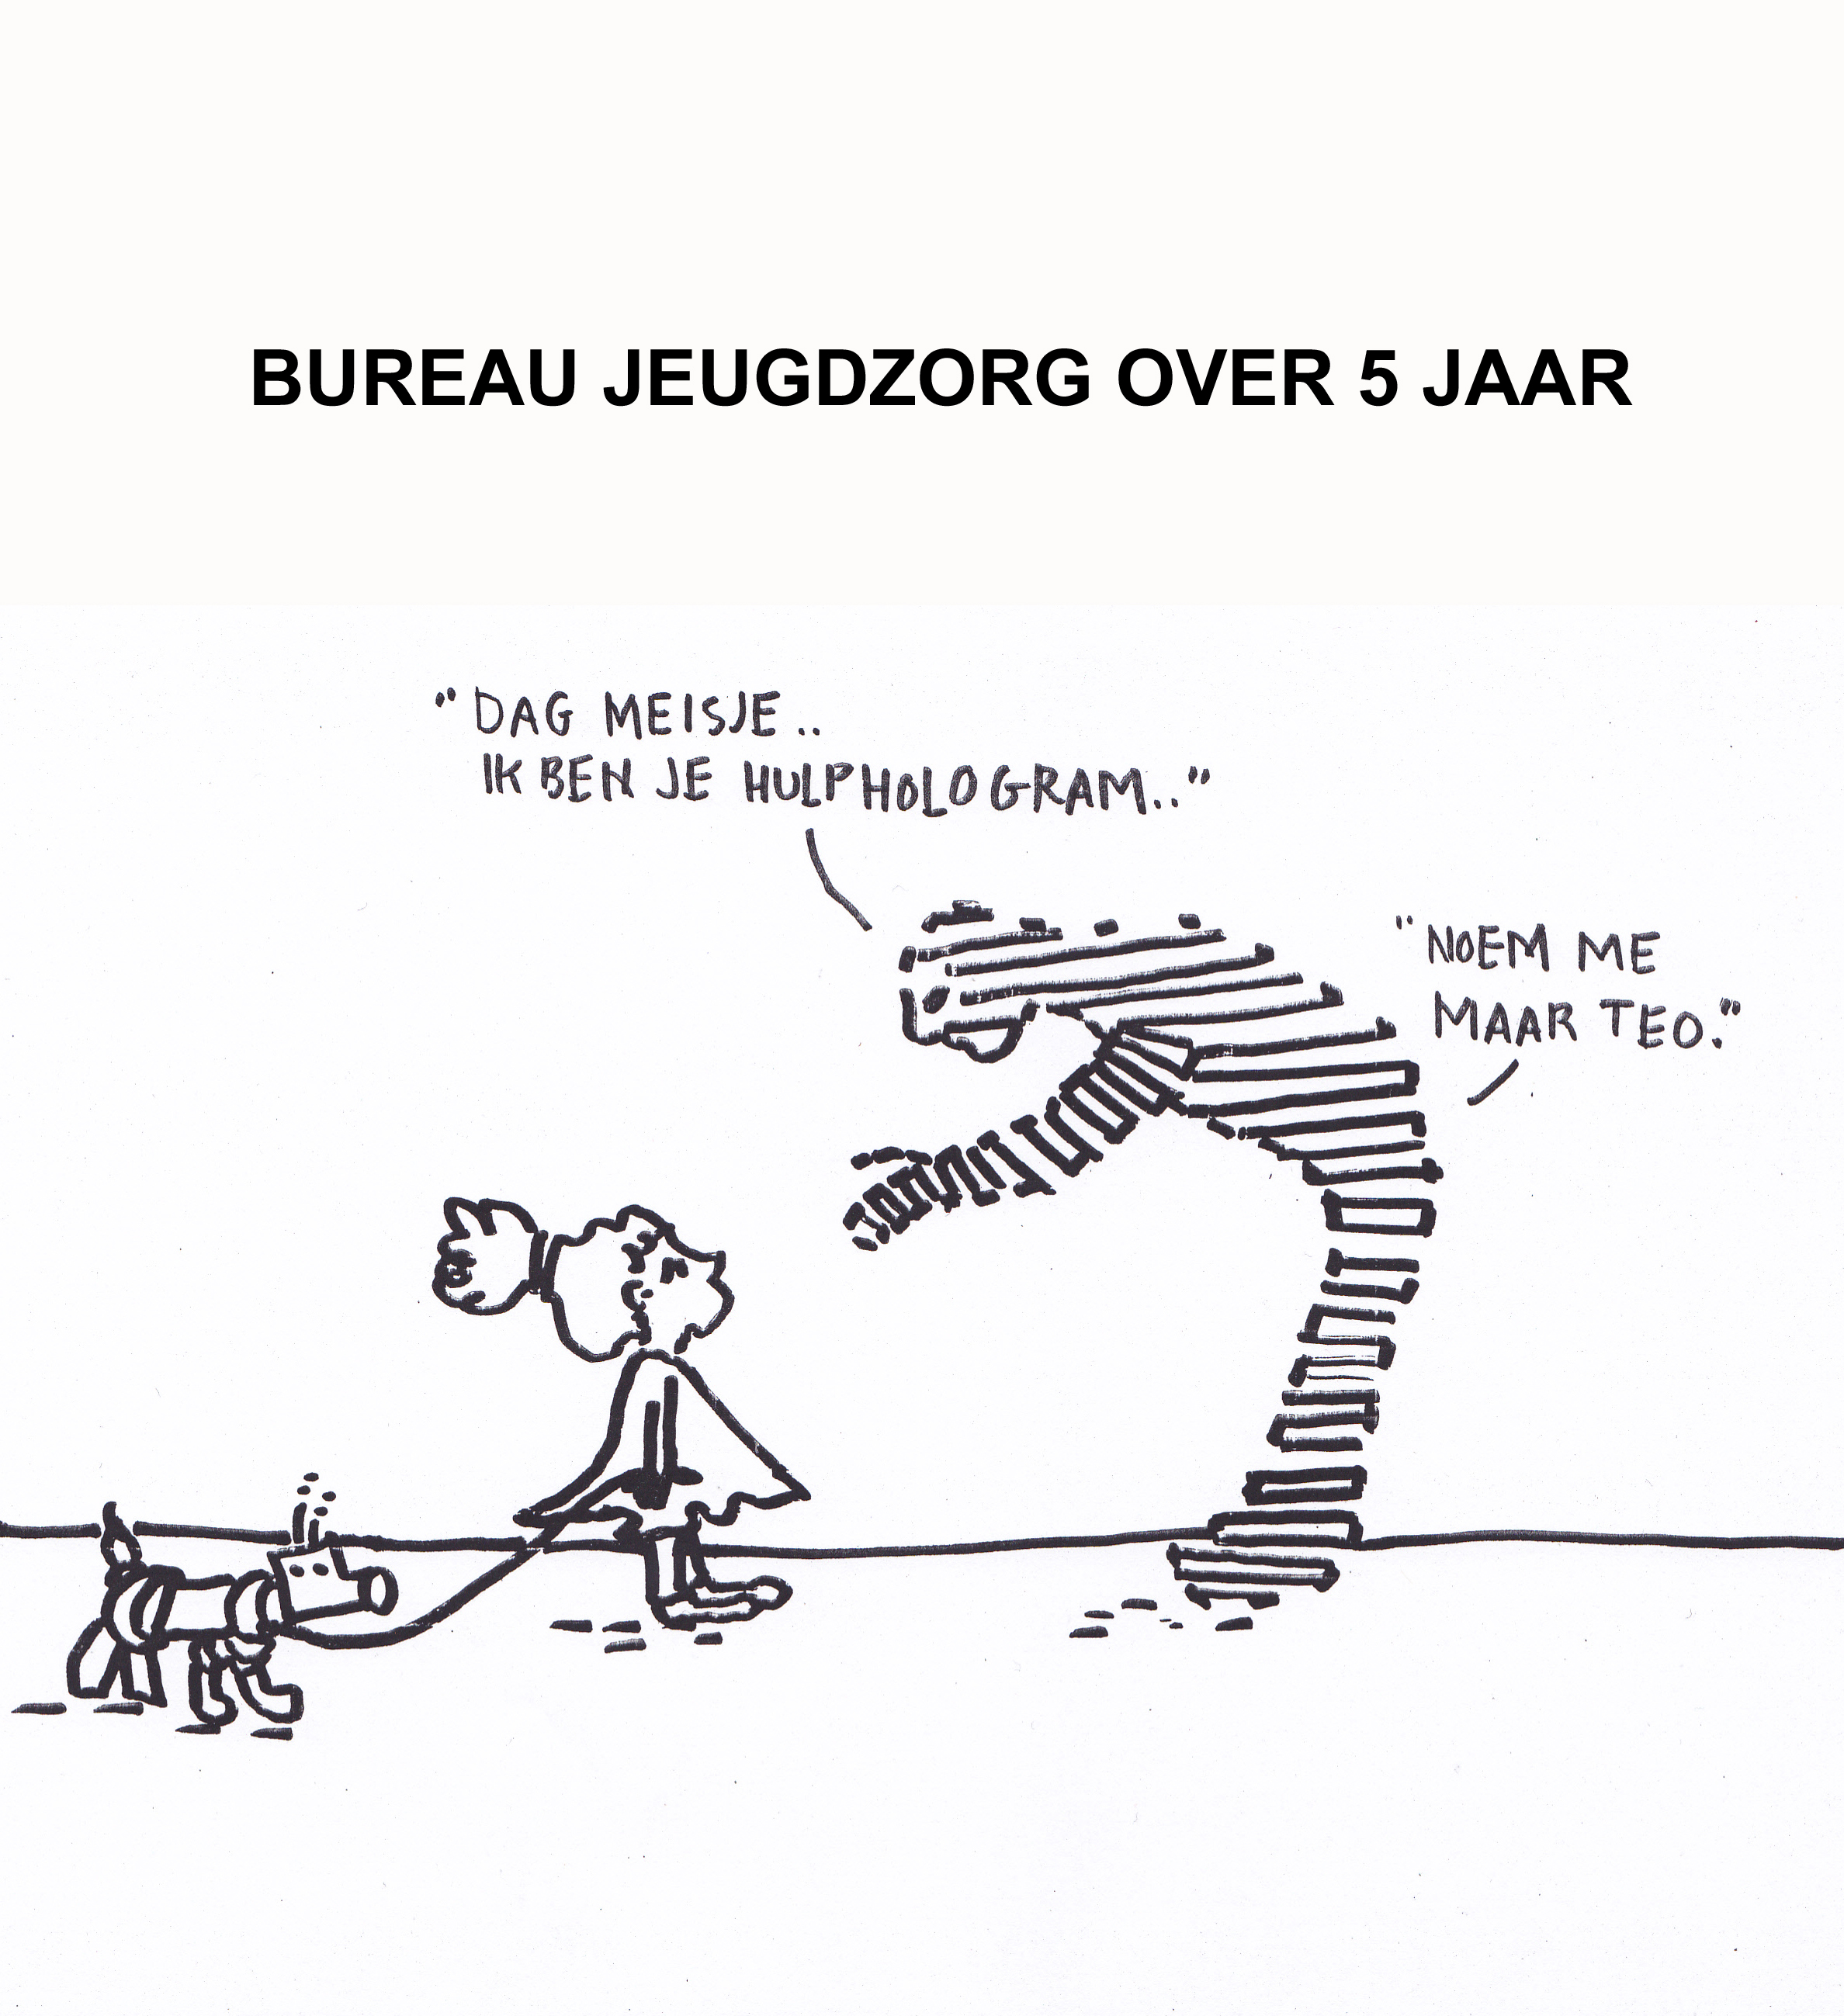 Cartoonist evelien slim for Bureau jeugdzorg